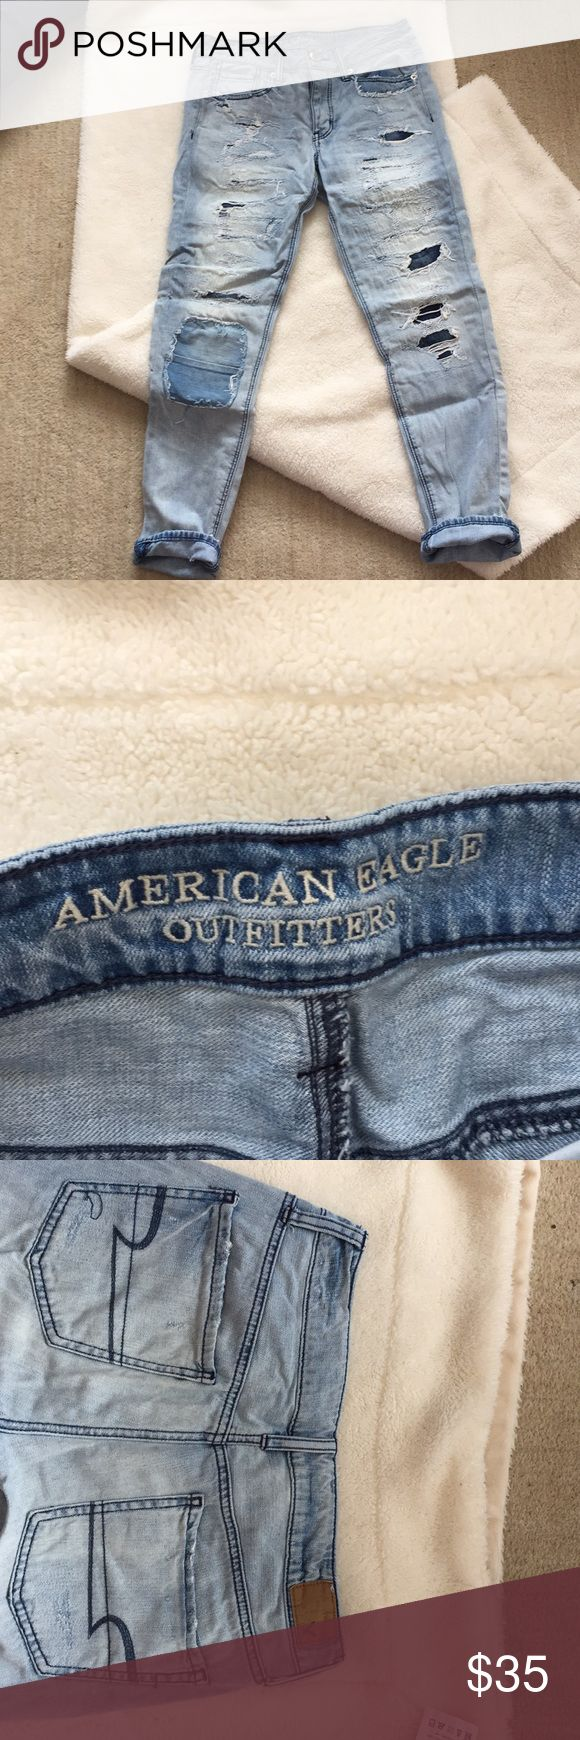 American eagle Tomgirl jeans In perfect condition, ordered them online and unfortunately didn't fit me/: fit loose around thigh area and slim towards ankles! Patches on front of pants! American Eagle Outfitters Jeans Boyfriend